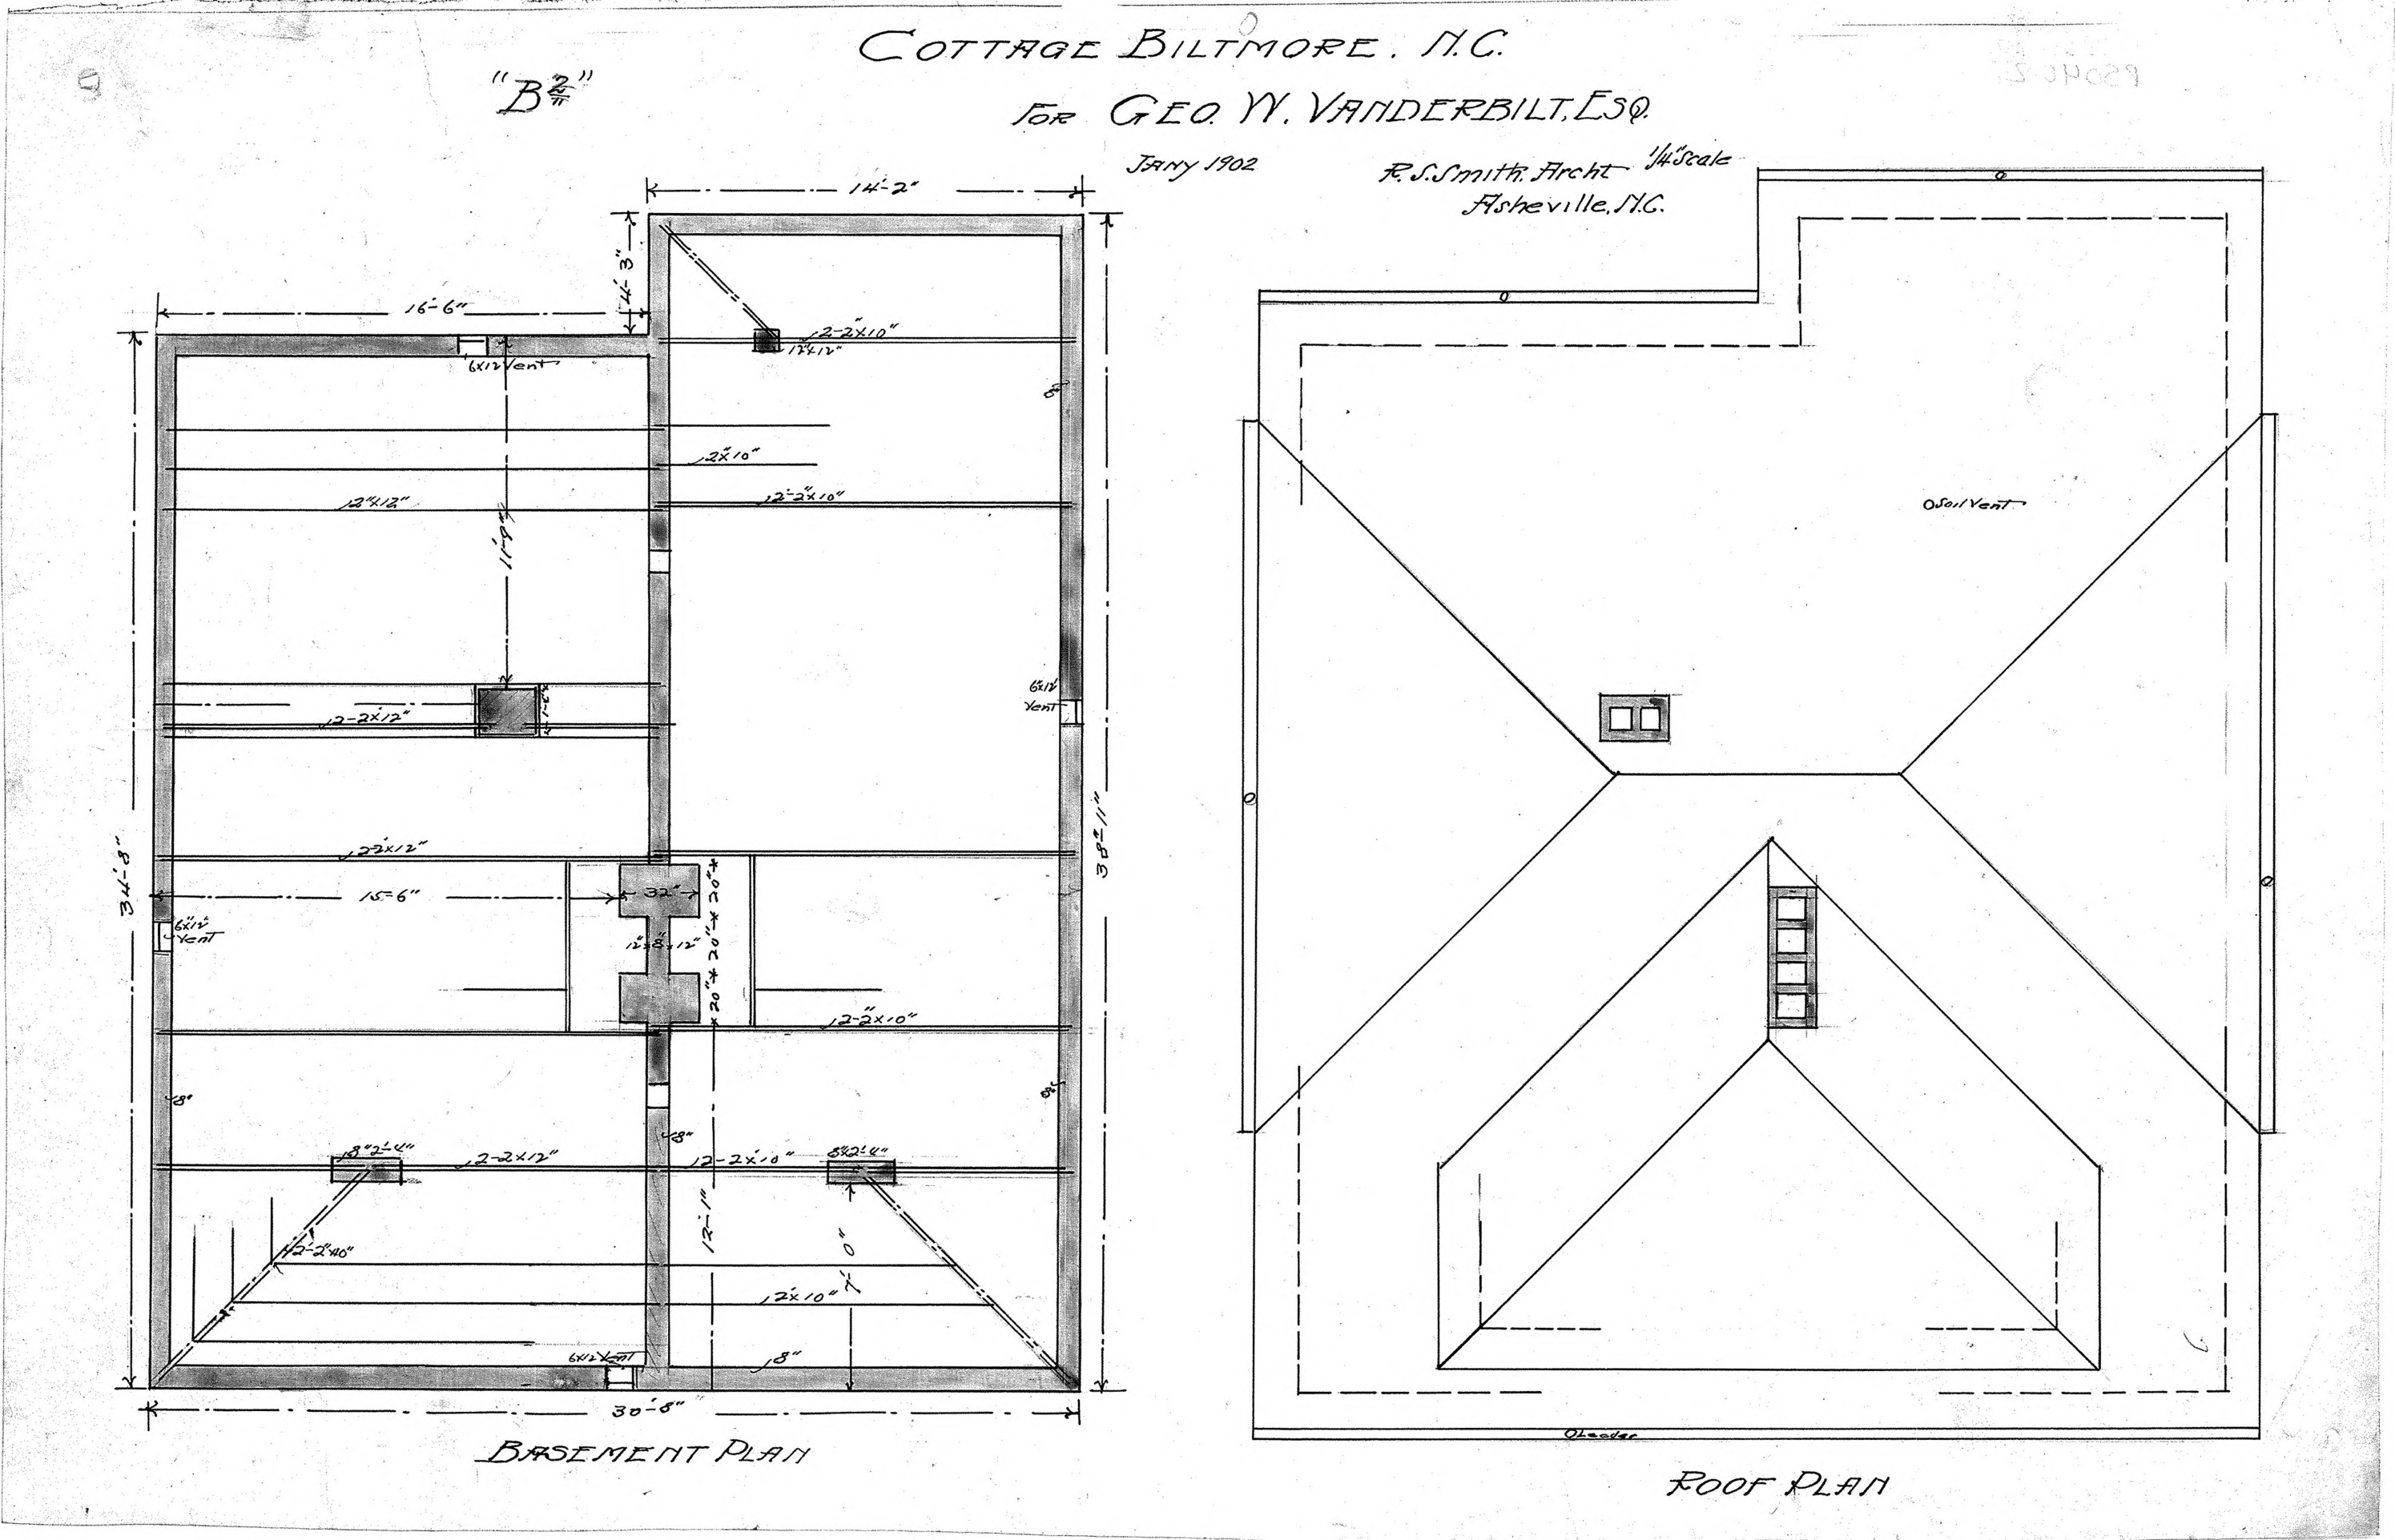 Cottage b2 basement roof plan biltmore village for Roof plans